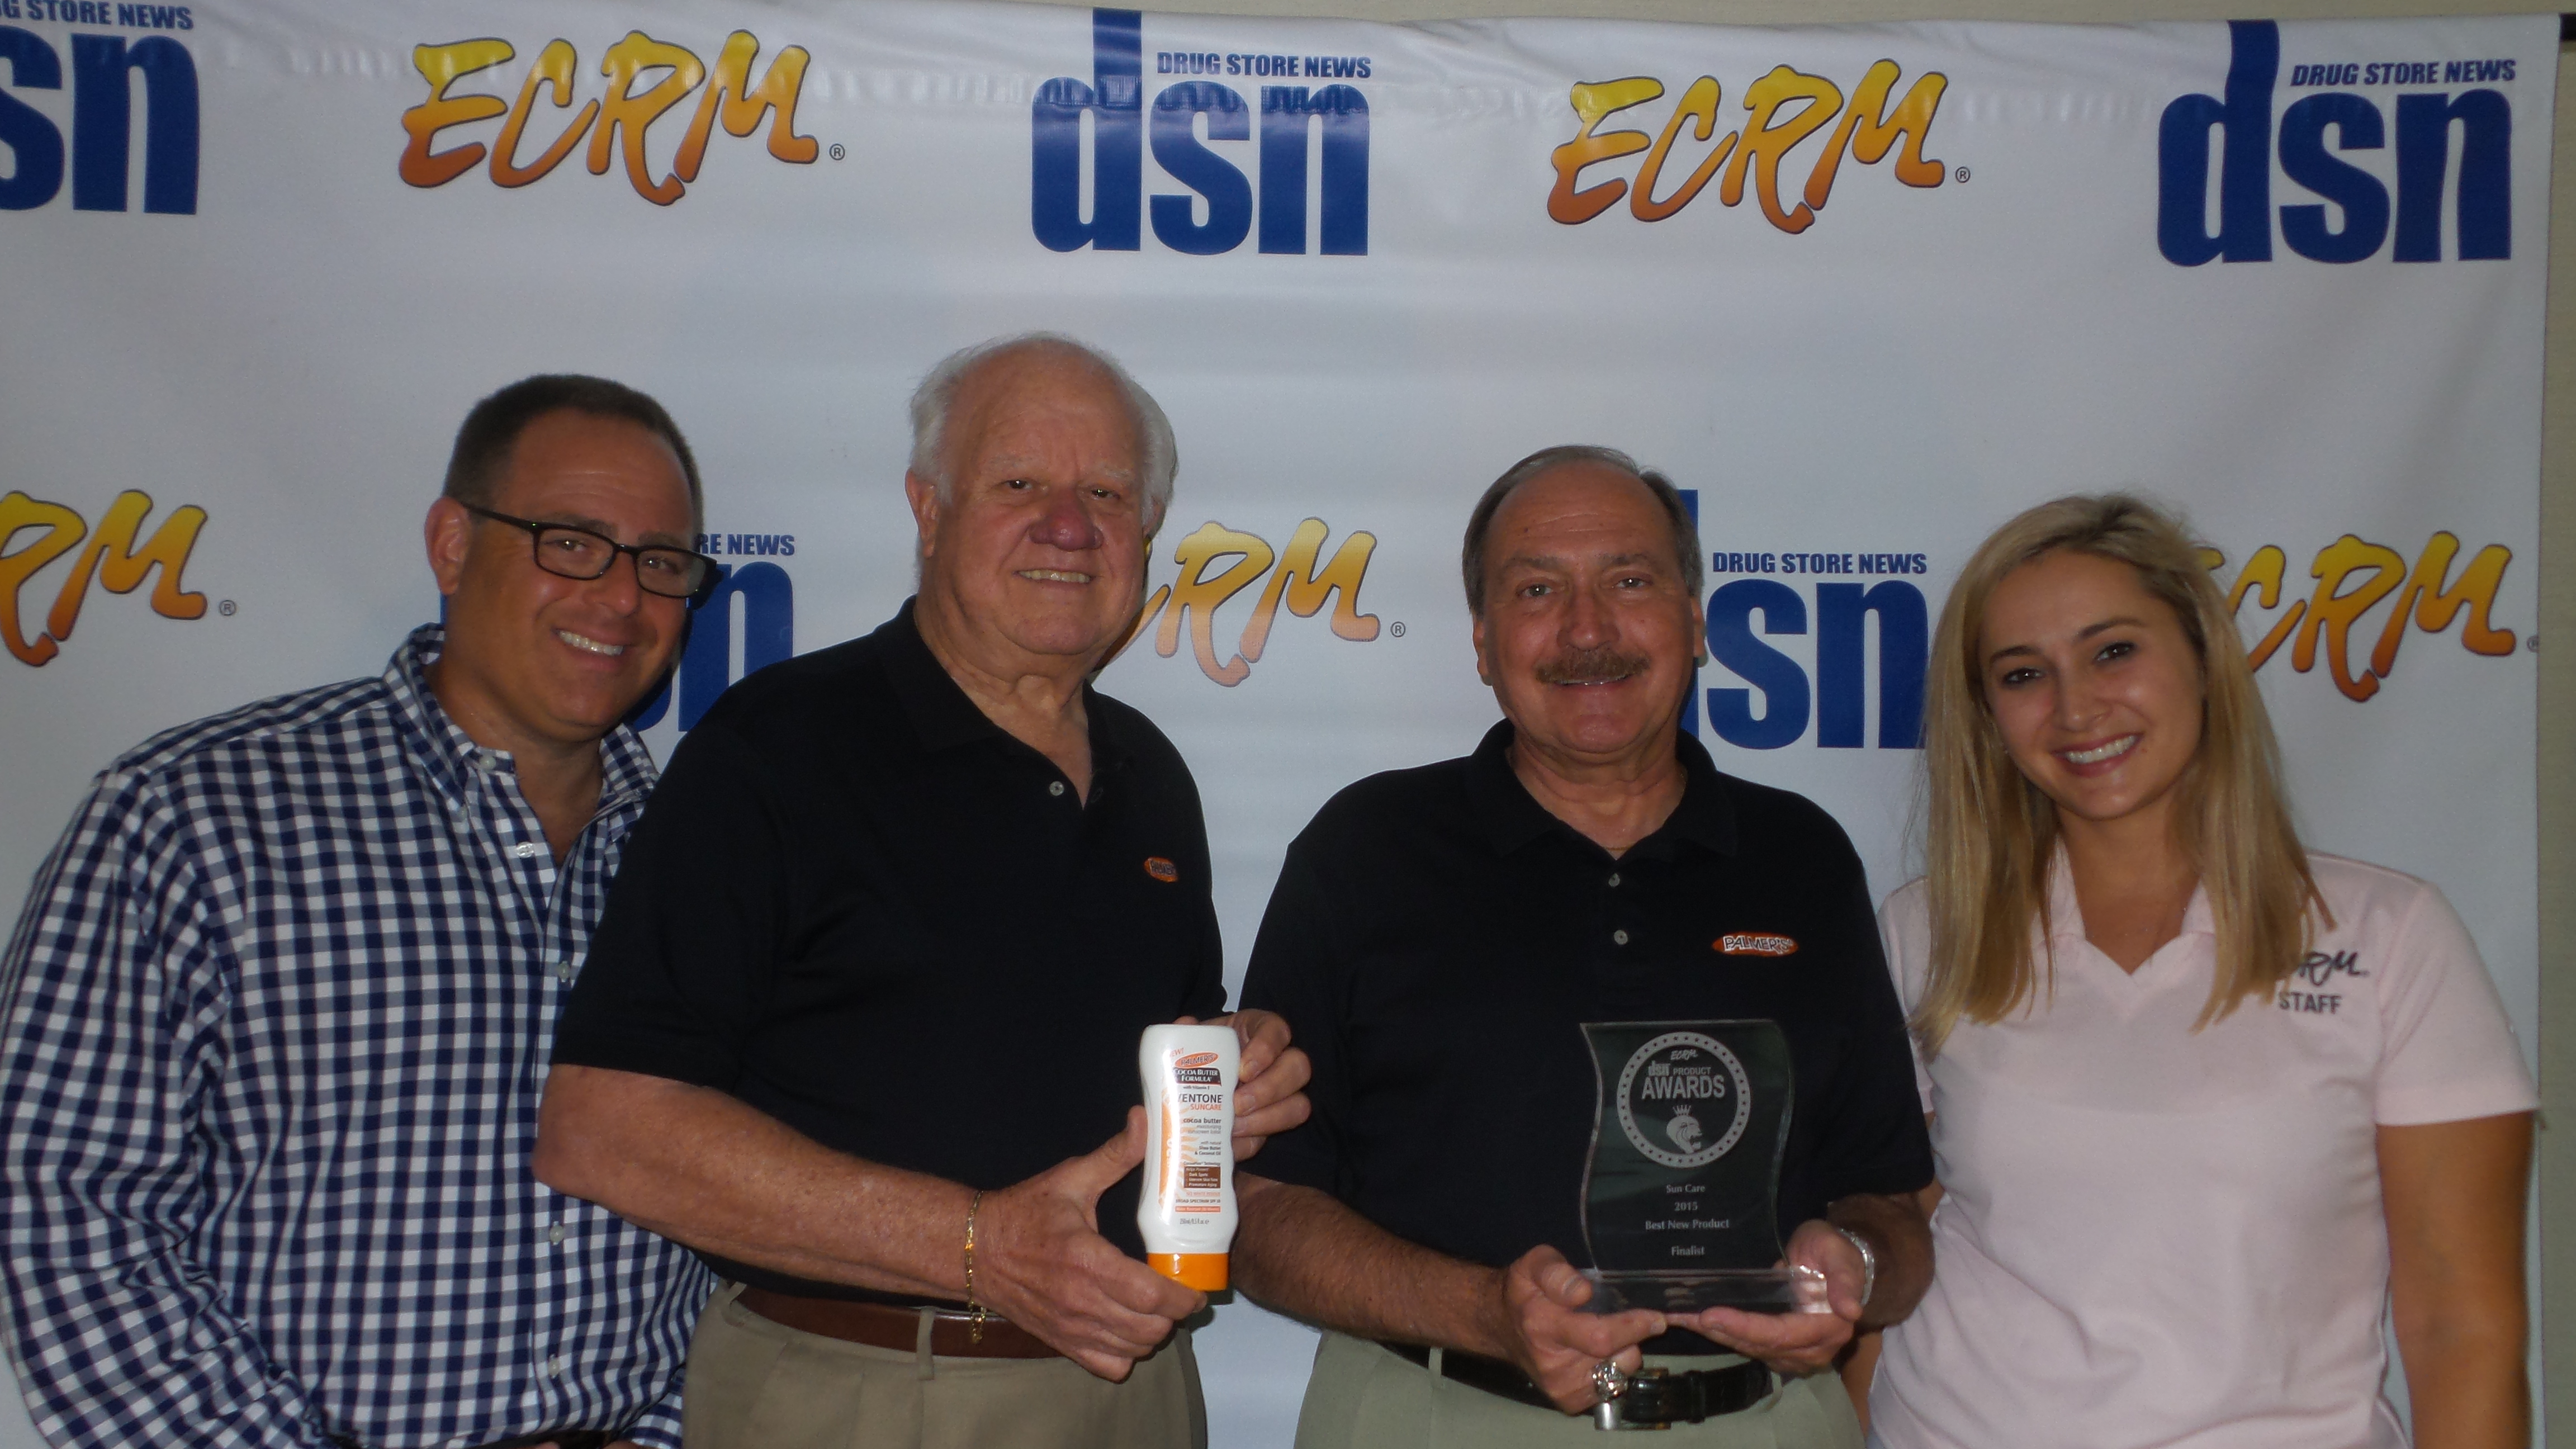 From left: Wayne Bennett, Publisher, Drug Store News; Gilberto Rodriguez, Regional Manager, E.T. Browne Drug Co.; Peter A. Au